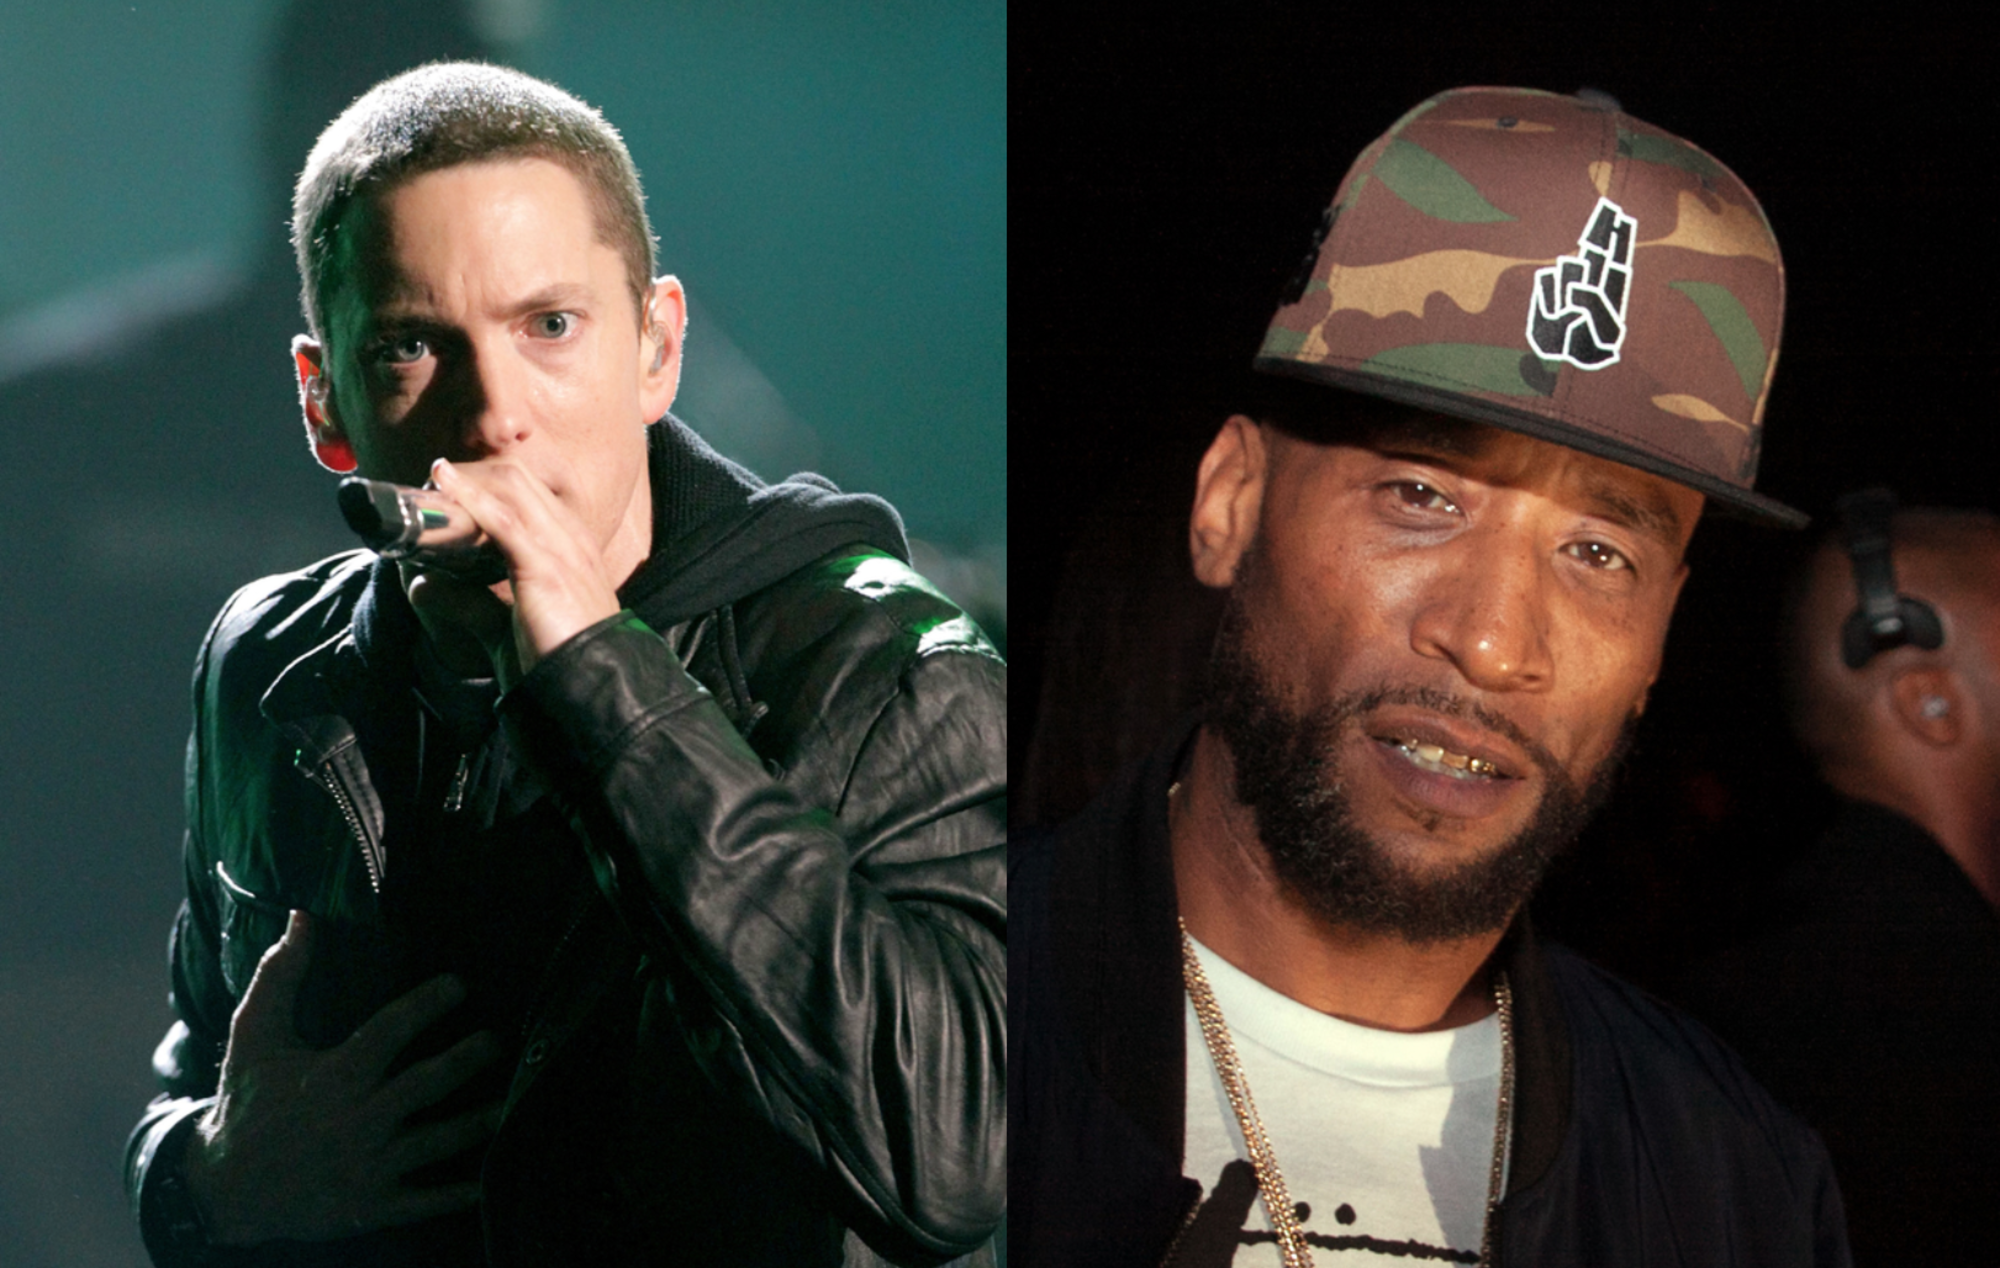 Eminem responds to Lord Jamar's claims that white rappers are guests in hip-hop